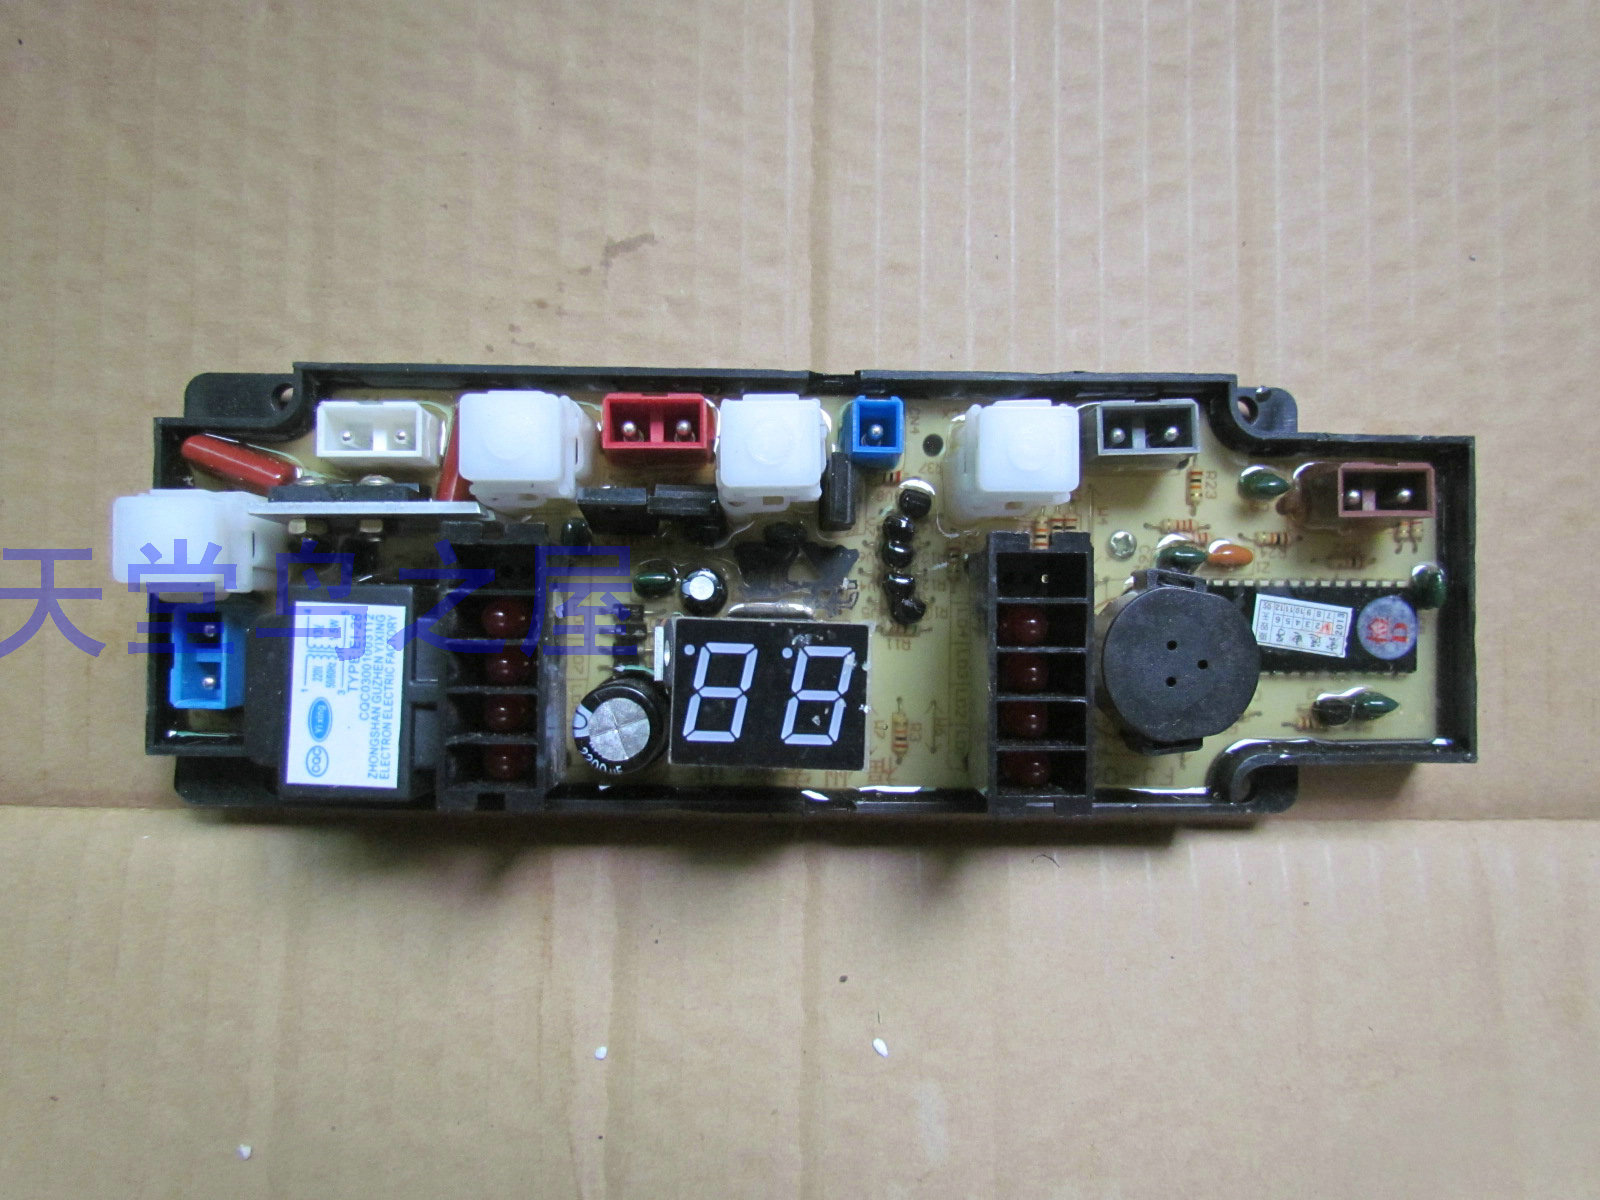 Washing machine accessories pc board motherboard program control hf-2288-x xqb55-2288